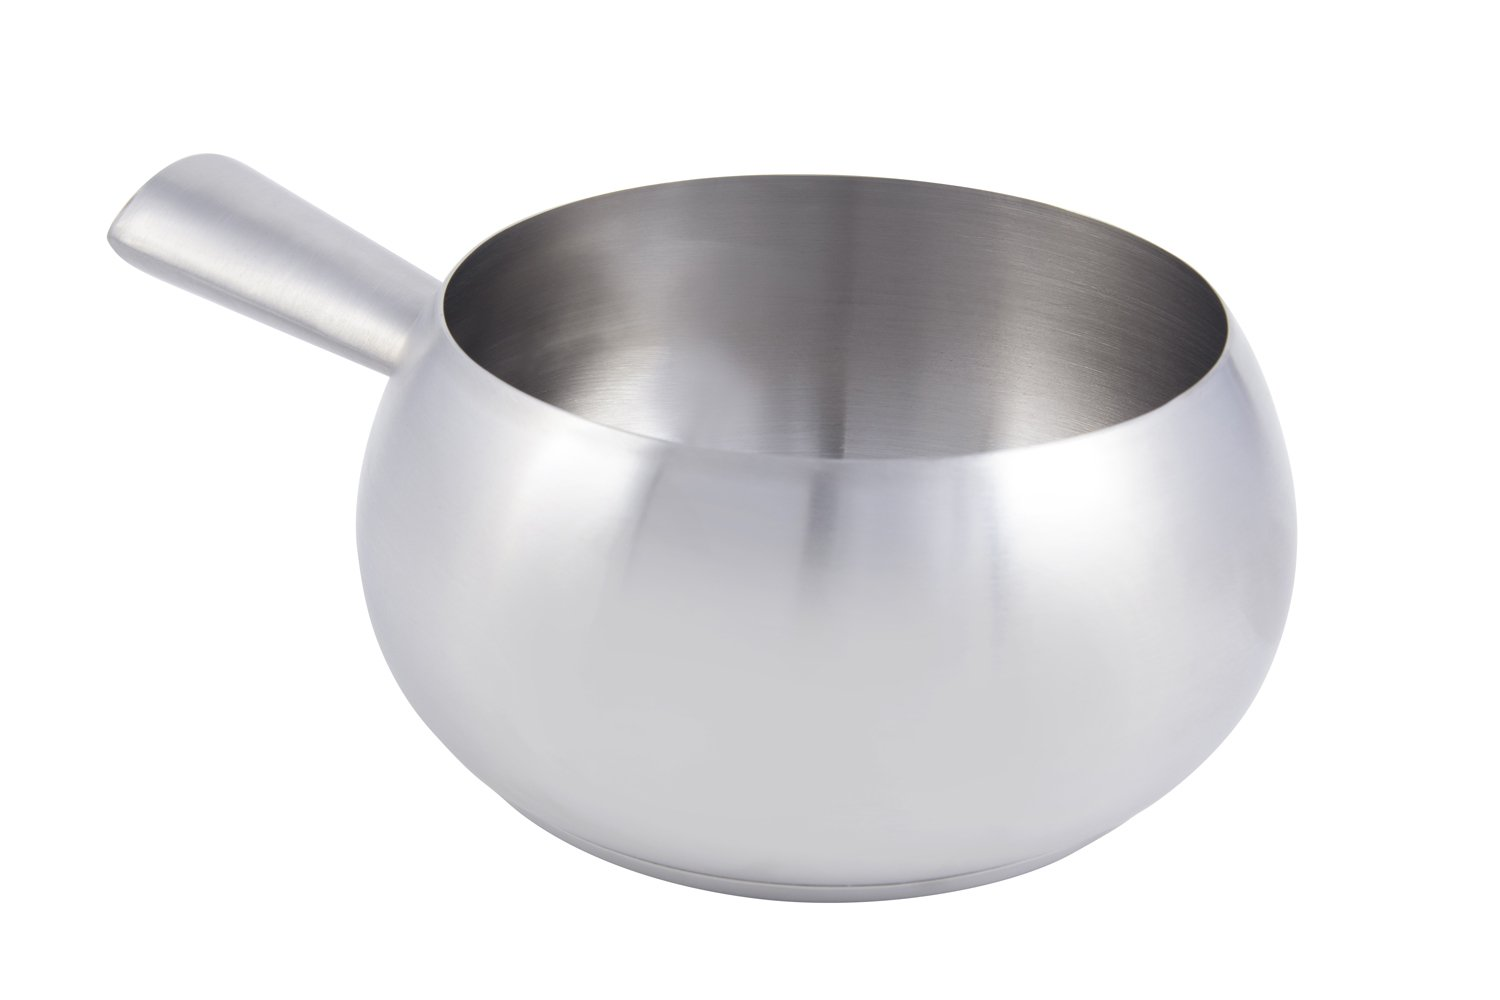 Bon Chef 5150SS Stainless Steel Induction Bottom Fondue Pot with Tapered Handle, 6'' Diameter x 4'' Height by Bon Chef